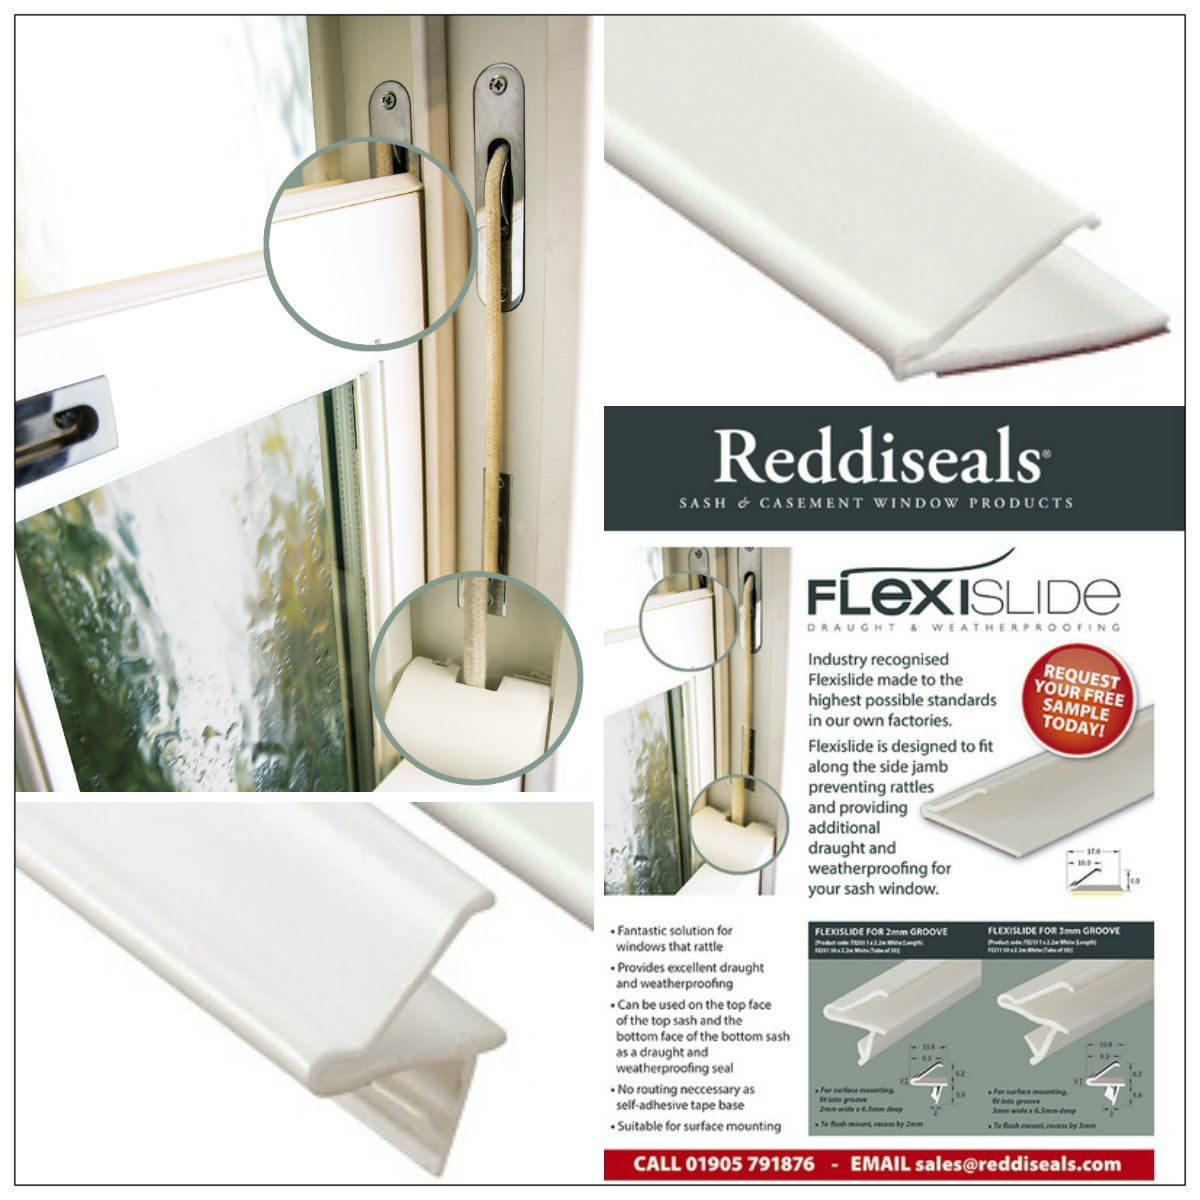 Freebiefriday Request Your Free Sample Of Self Adhesive Flexislide